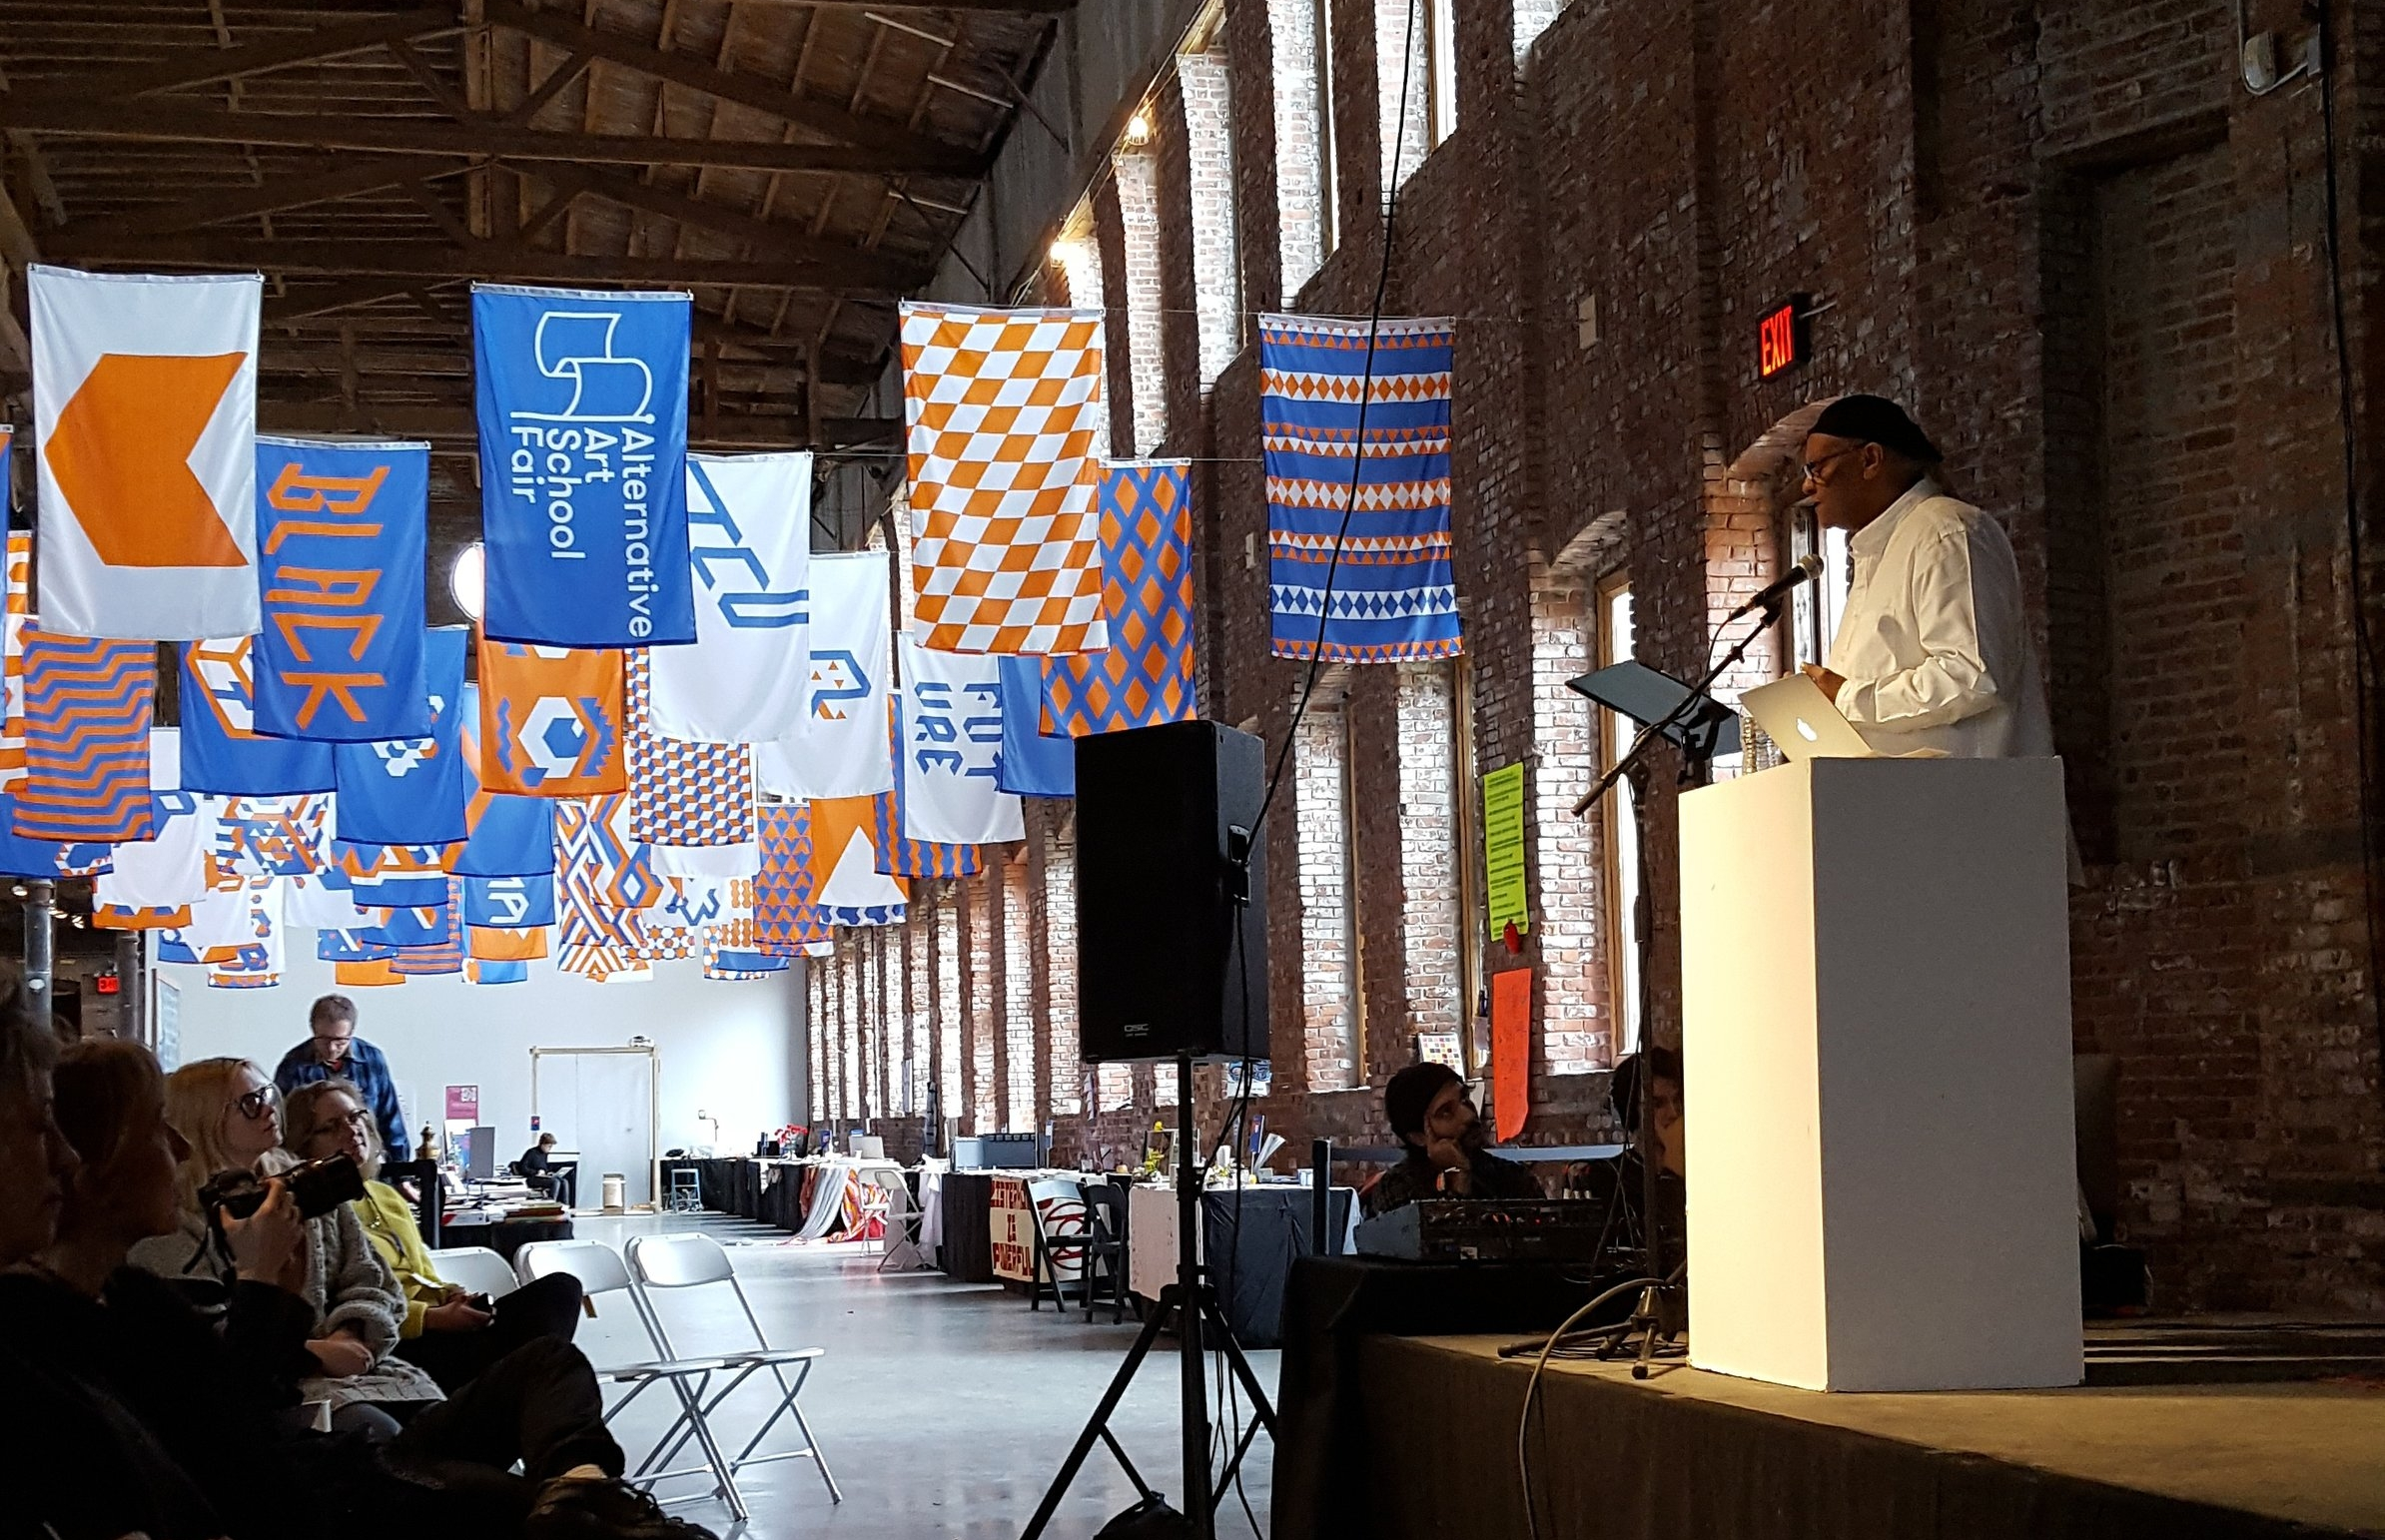 """Dr. Craig L. Wilkins, PhD, RA, speaking at Pioneer Works on November 20, in a talk titled """"The Architecture of Arts Education""""."""